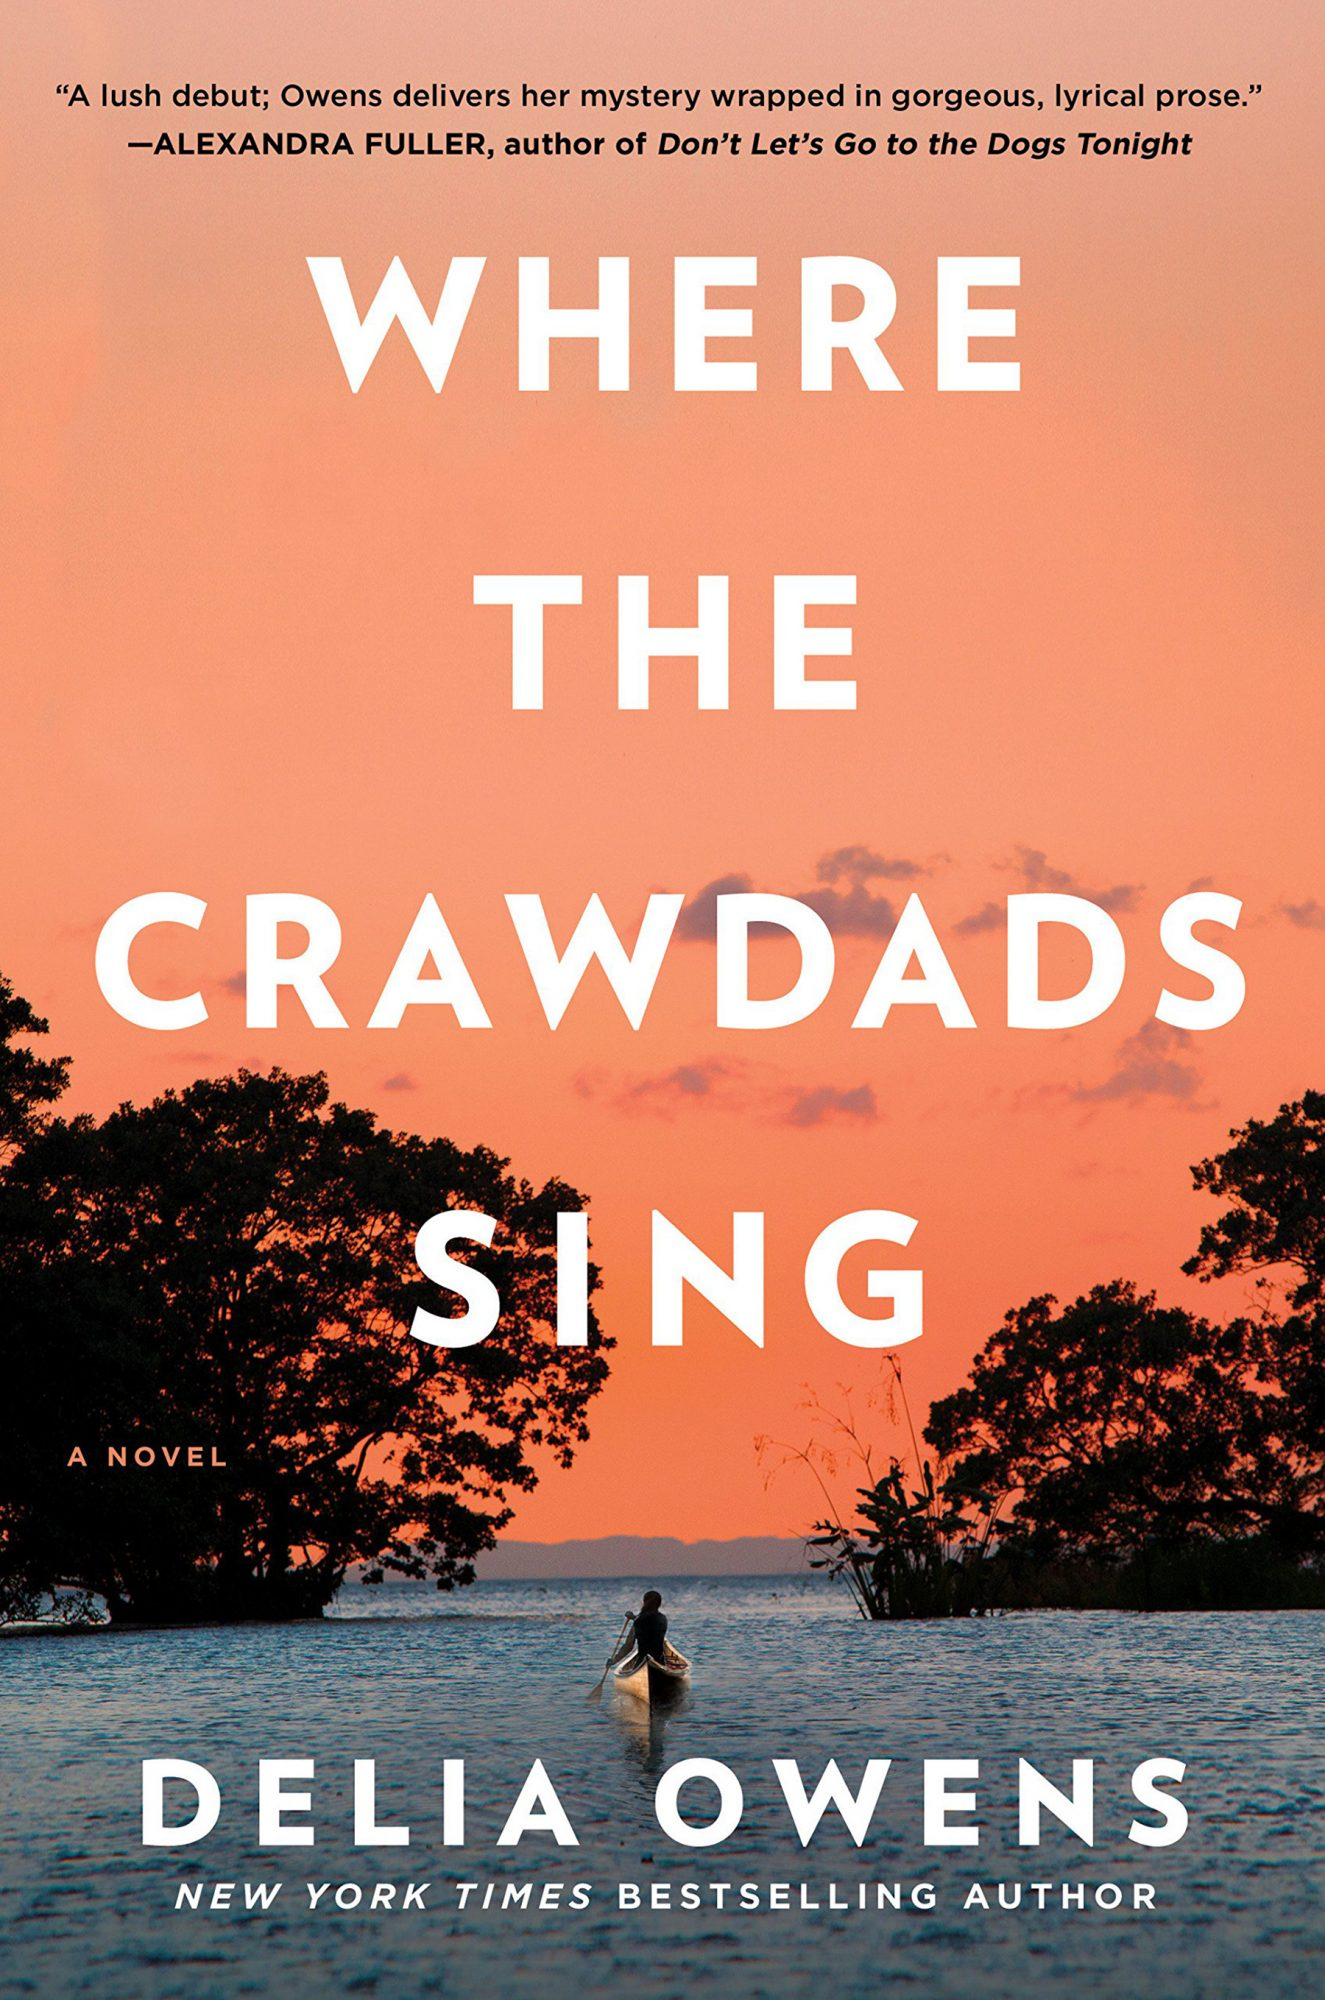 Where the Crawdads Sing by Delia Owens G.P. Putnam's Sons